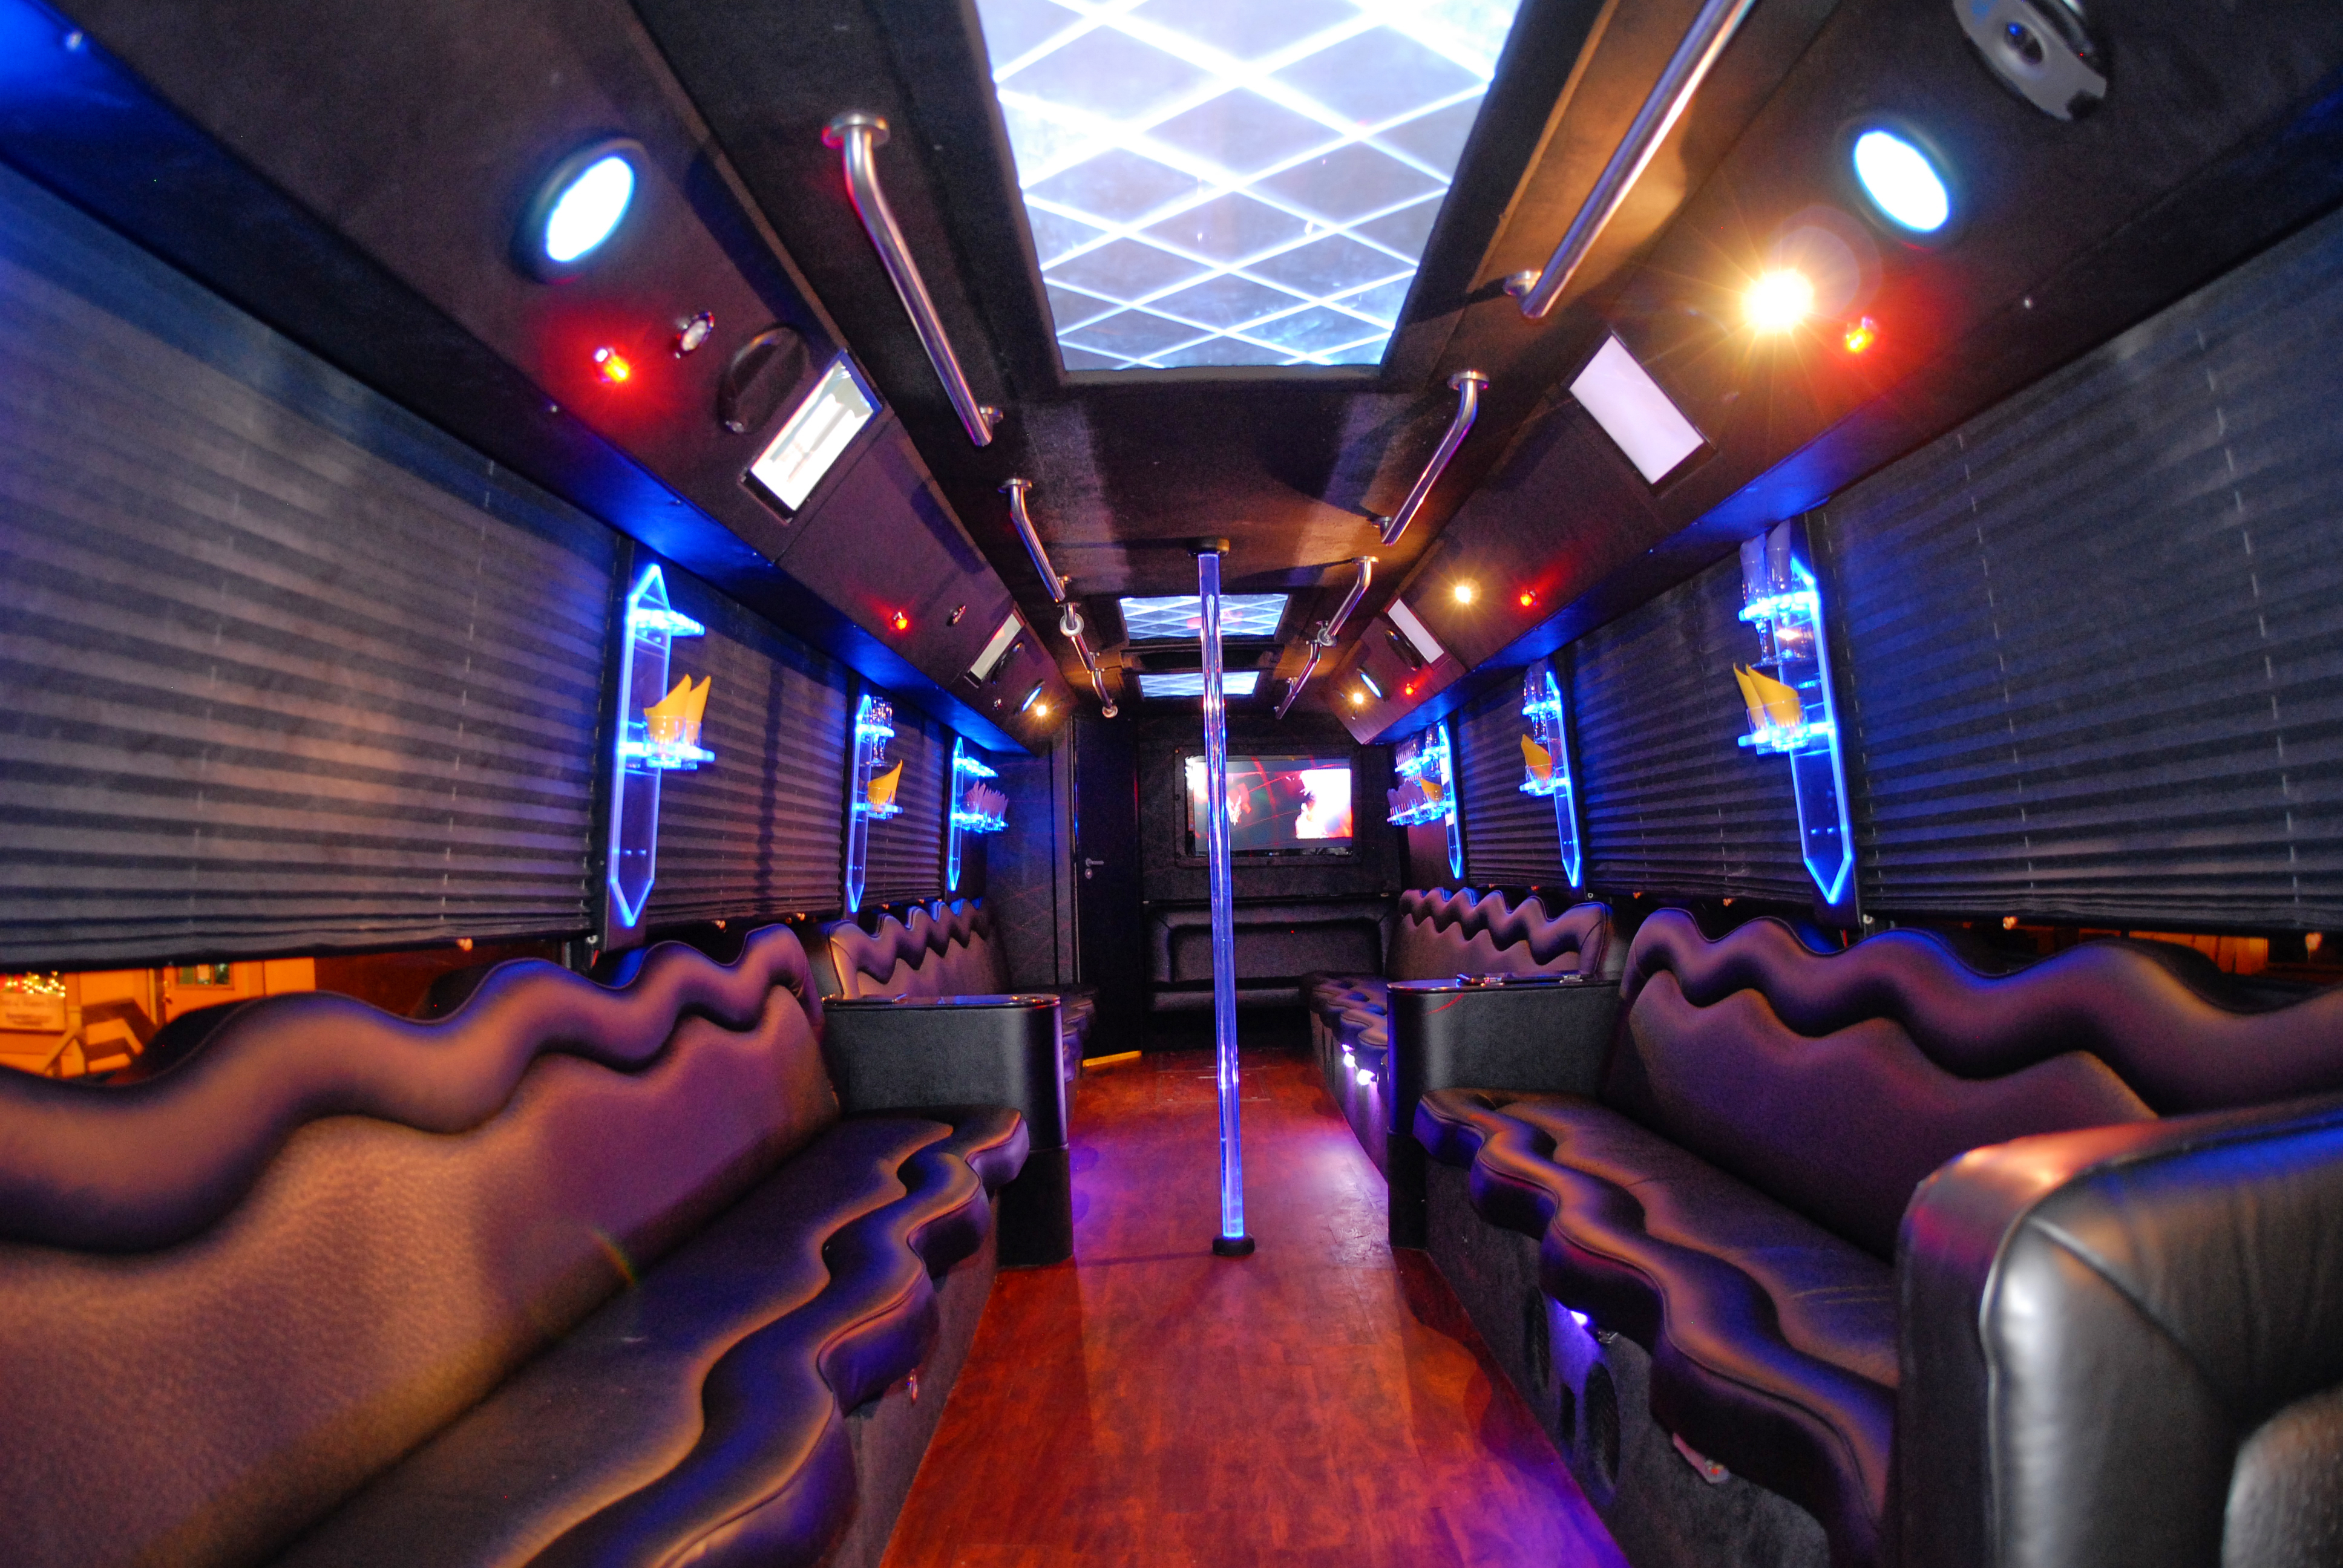 Ny Party Bus Nyc Limousines Party Bus Rentals Charter Bus Suv Limo Nj Nyc Luxury Limousine